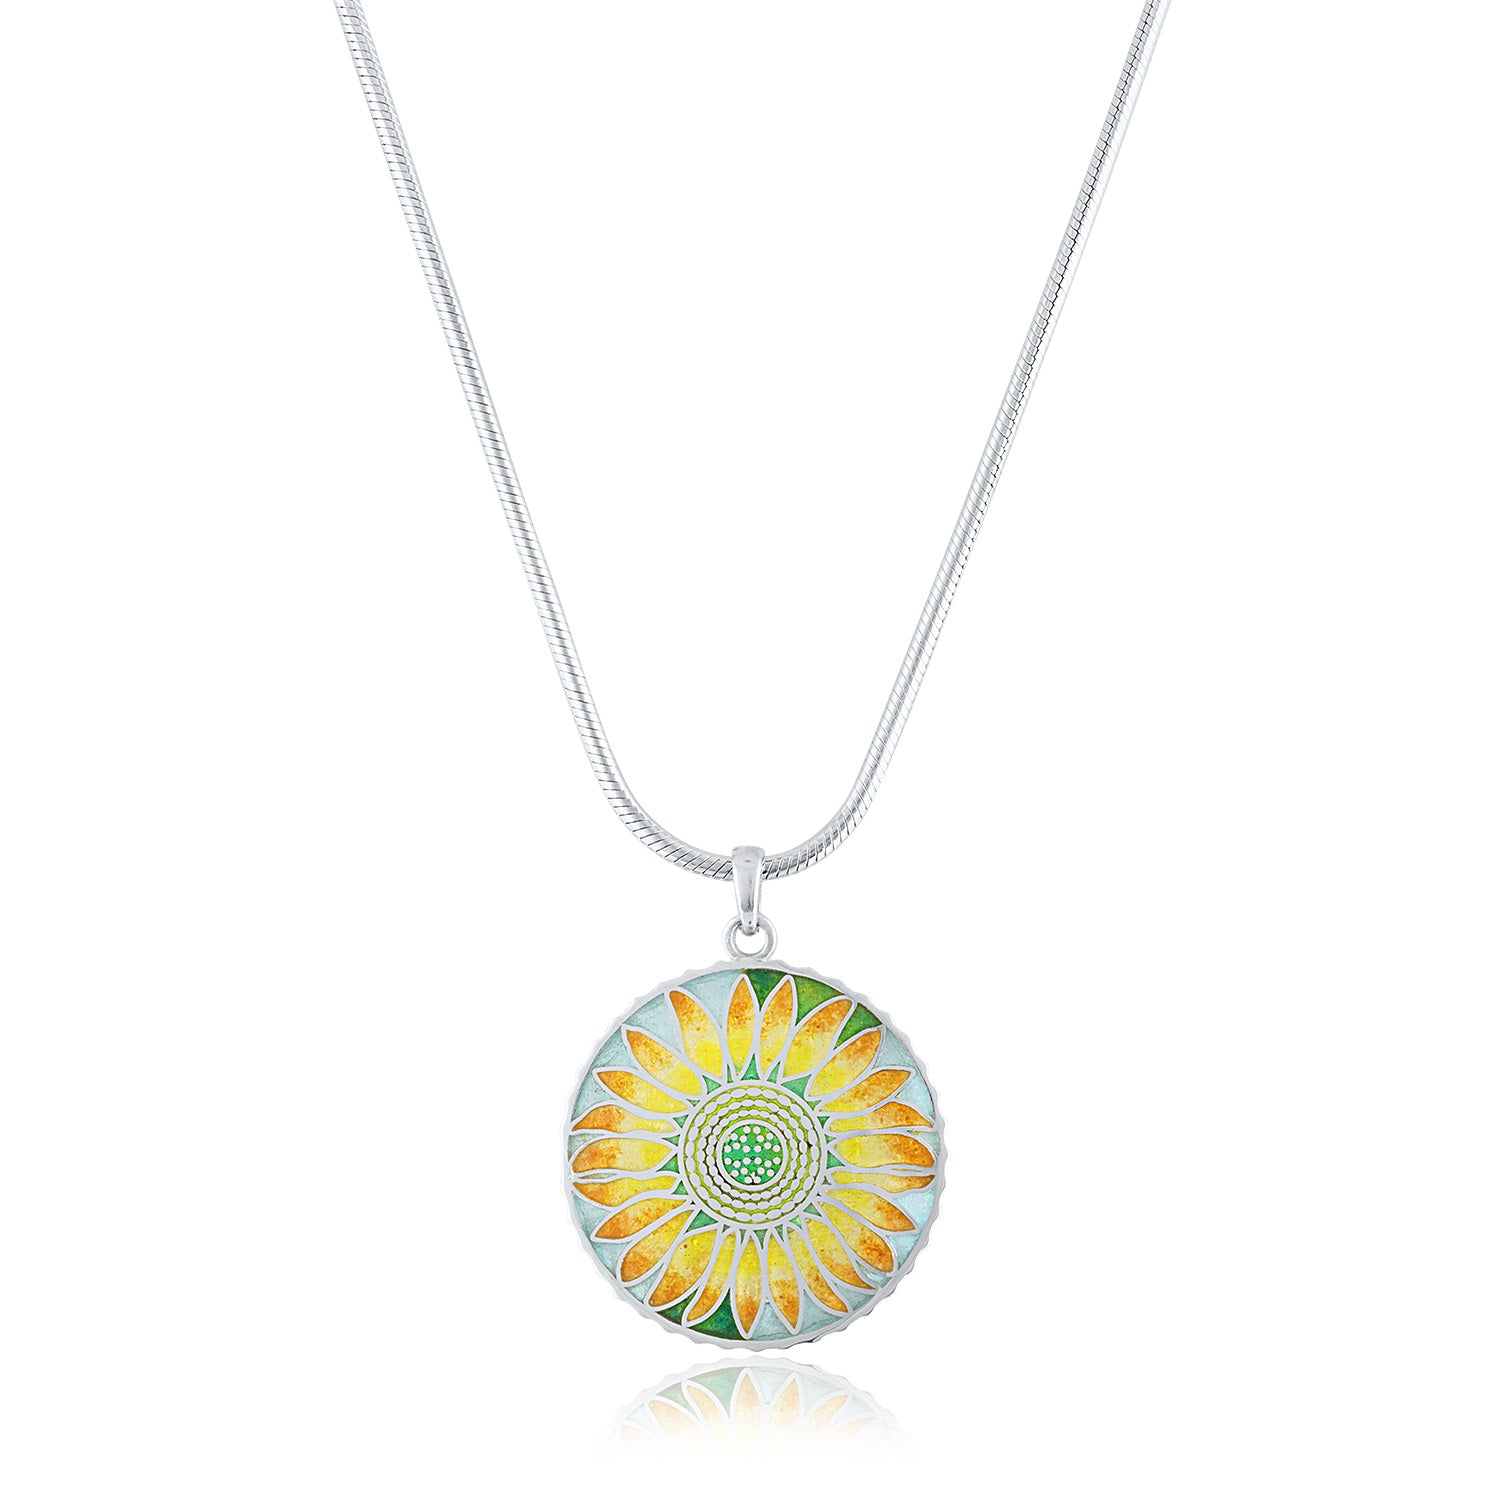 Enamel Limited Edition Flower Series Sunflower